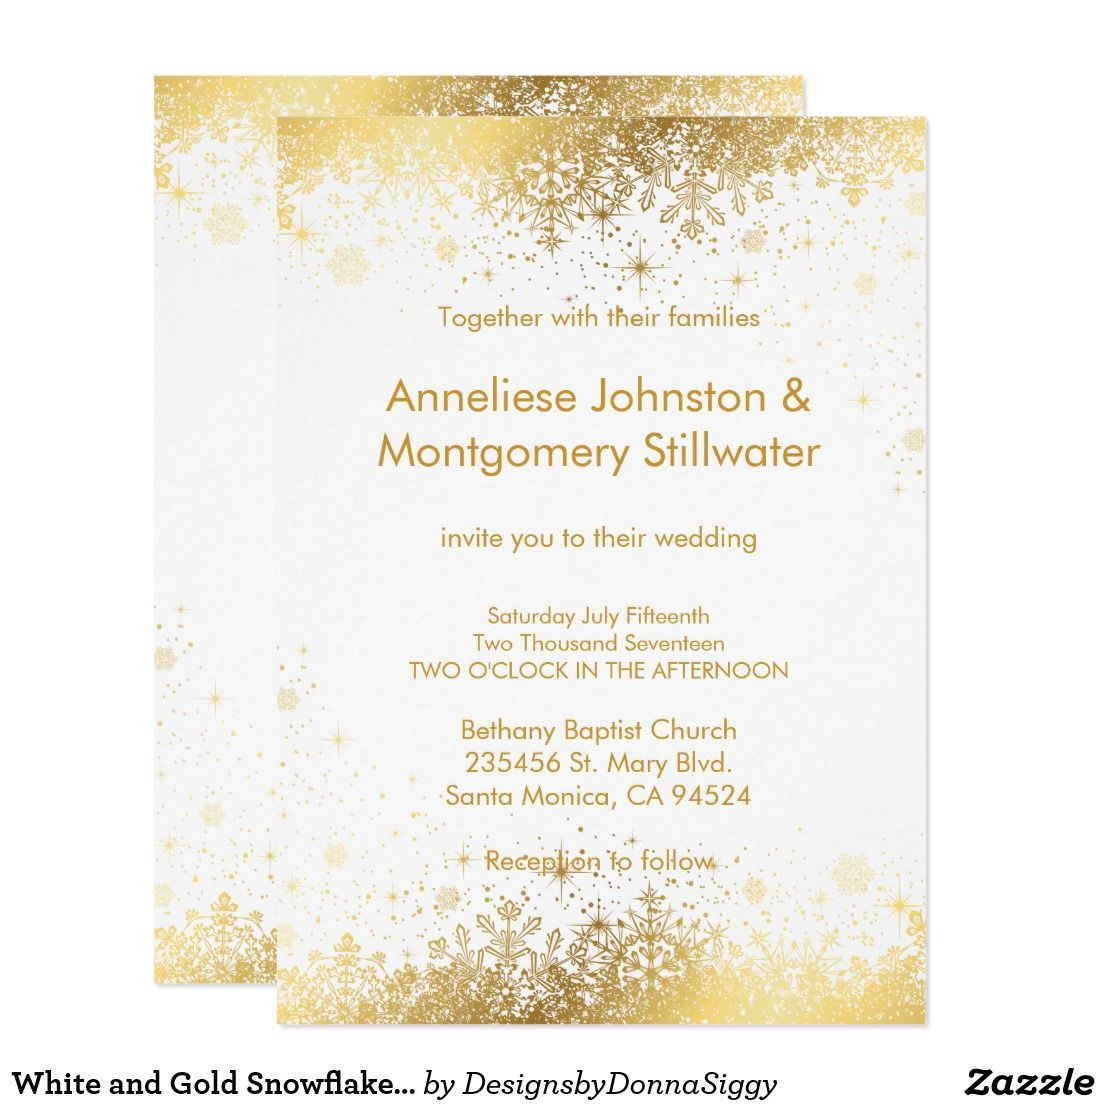 White And Gold Snowflakes Wedding Invitation Quinceanera Ideas